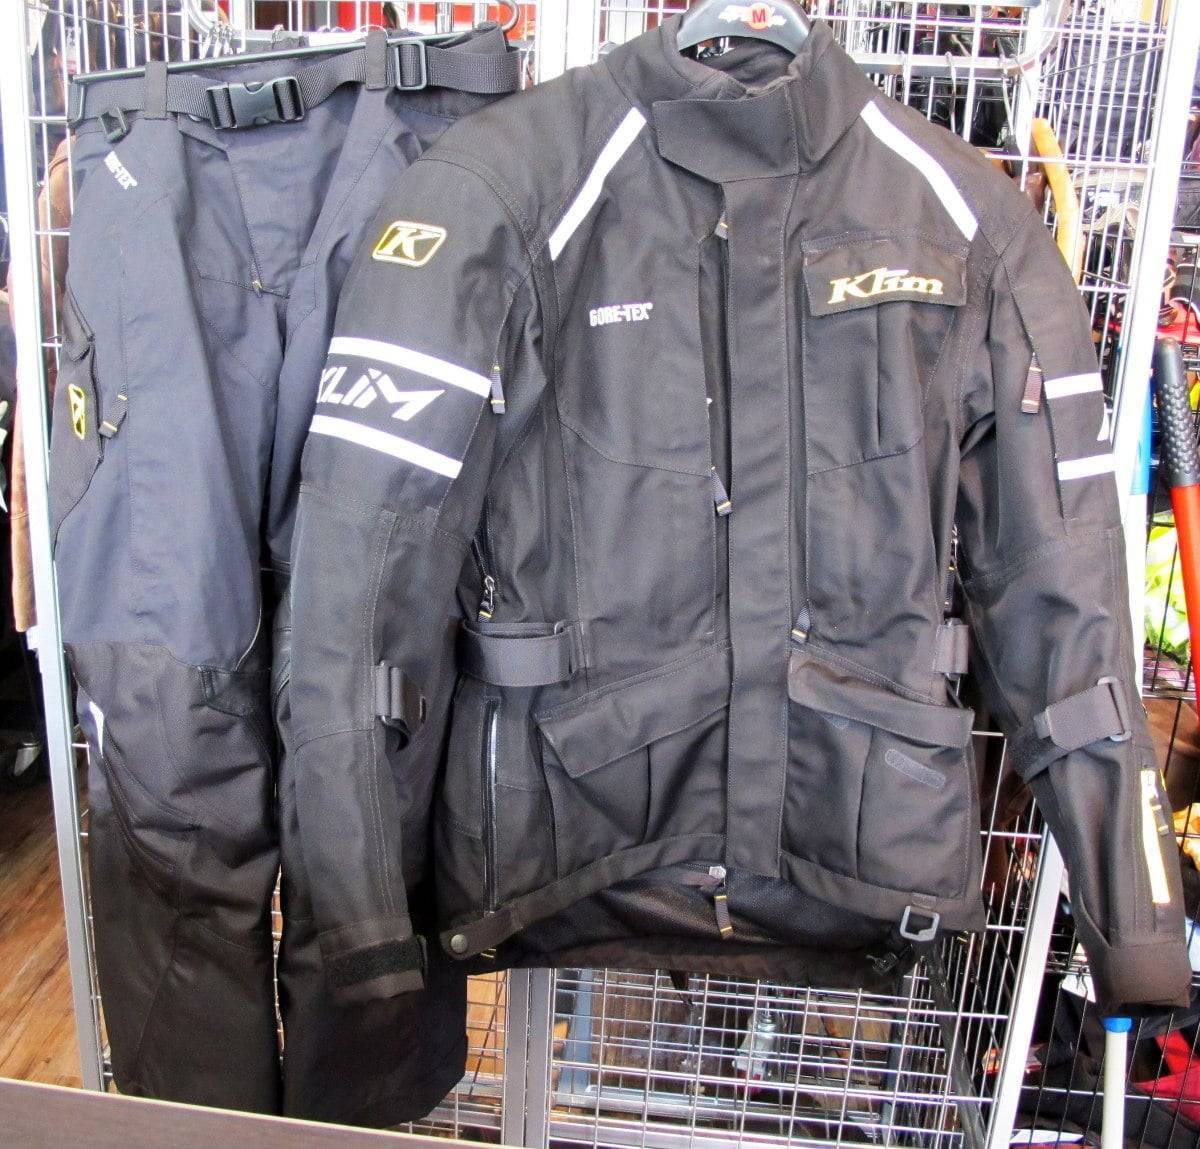 Near-Bomb-Proof Klim Touring Set